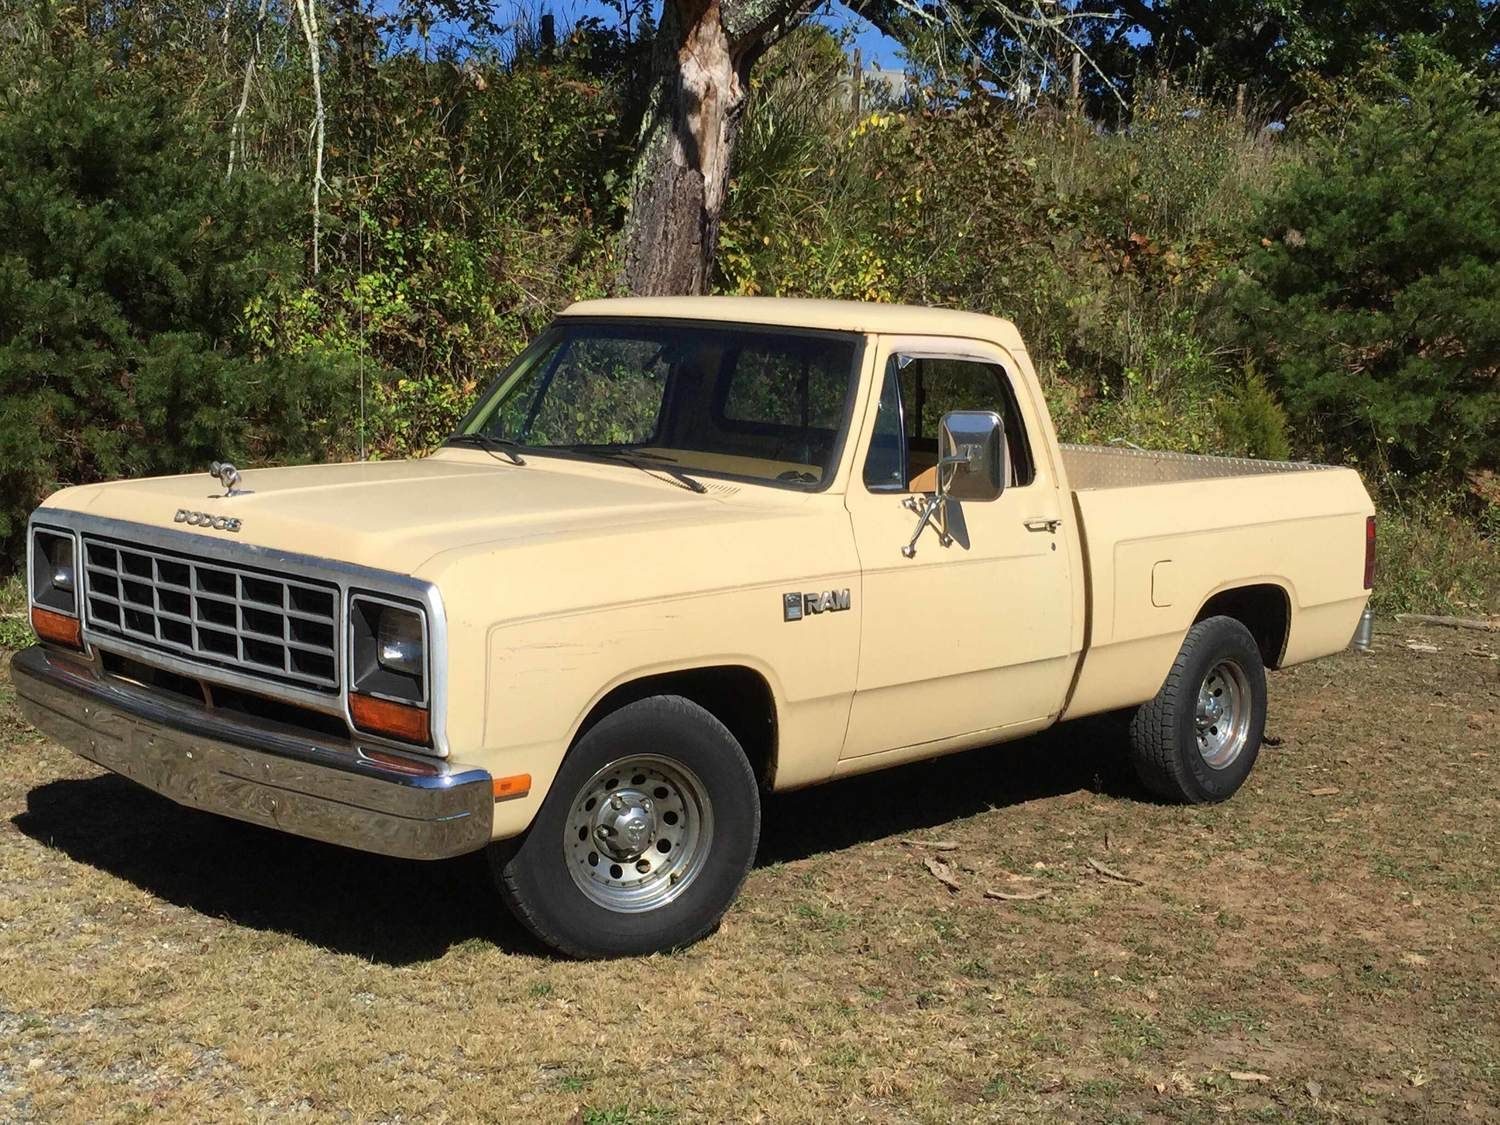 Greg Taffer His 85 Dodge Trucks Lmc Truck Dodge Trucks Ram